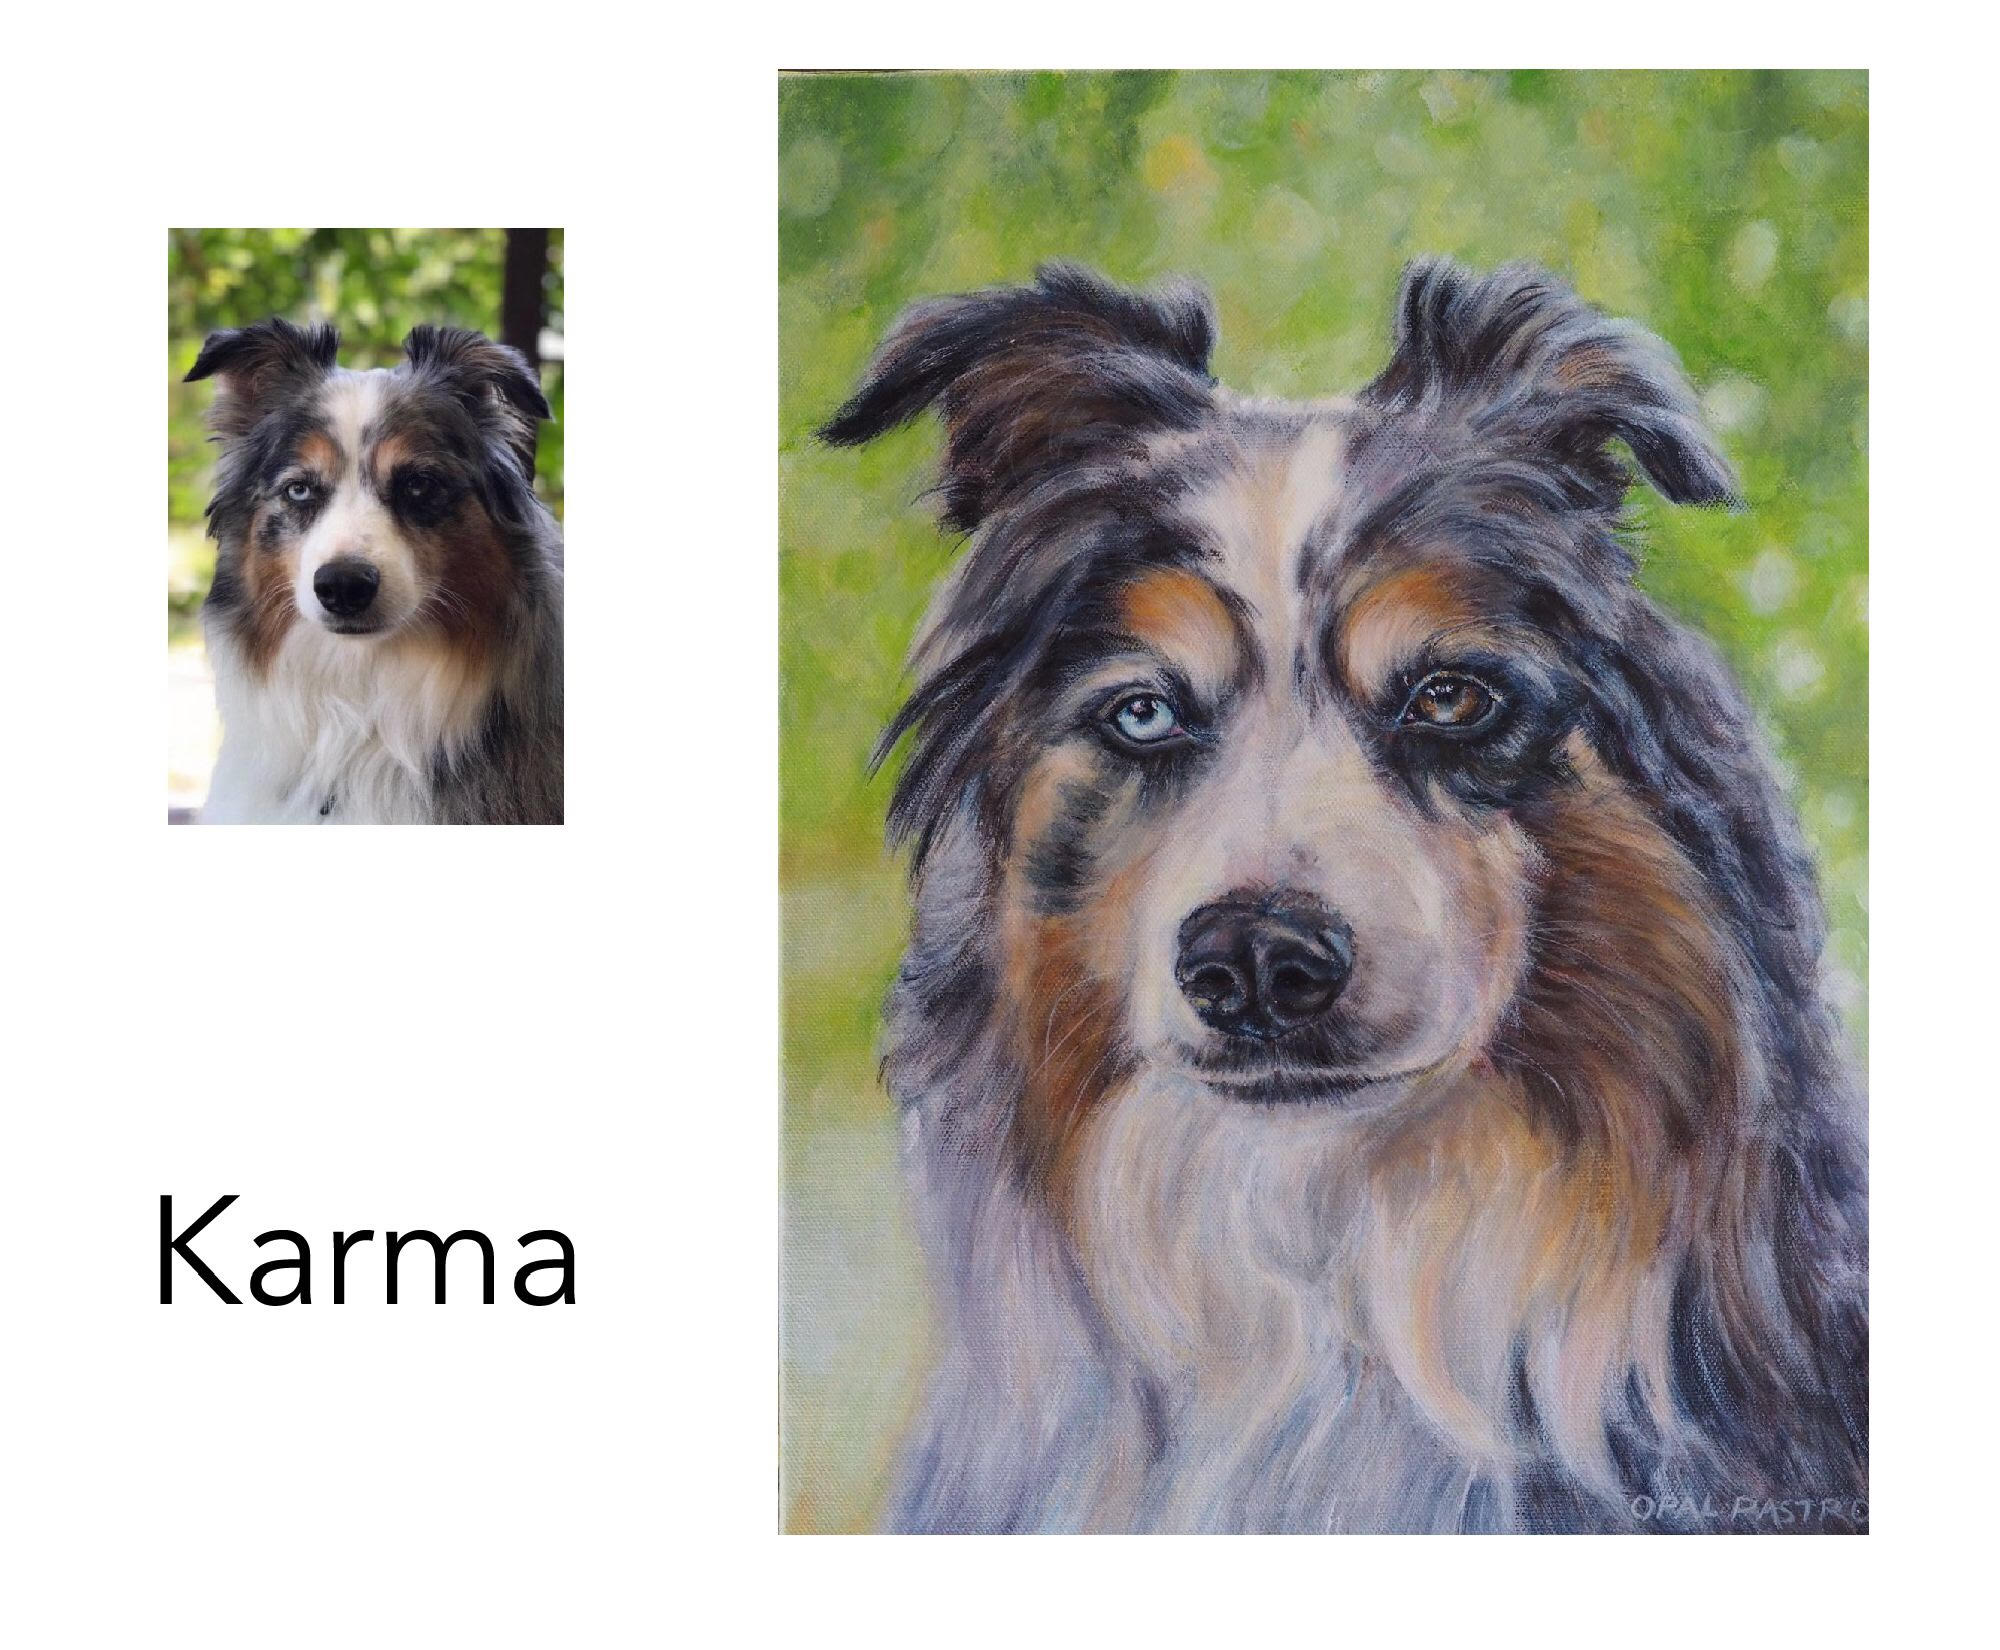 "Australian Shepherd - Acrylic on Canvas, 30.5cm x 41cm (12"" x 16"")Private commissionSydney, NSW—————————————-Karma is a beautiful Blue Merle Australian Shepherd with bi-coloured eyes. I met her at a market where I had a pet portrait stall. She was intelligent, gentle and well behaved- a real sweetie. Such a delight to paint."